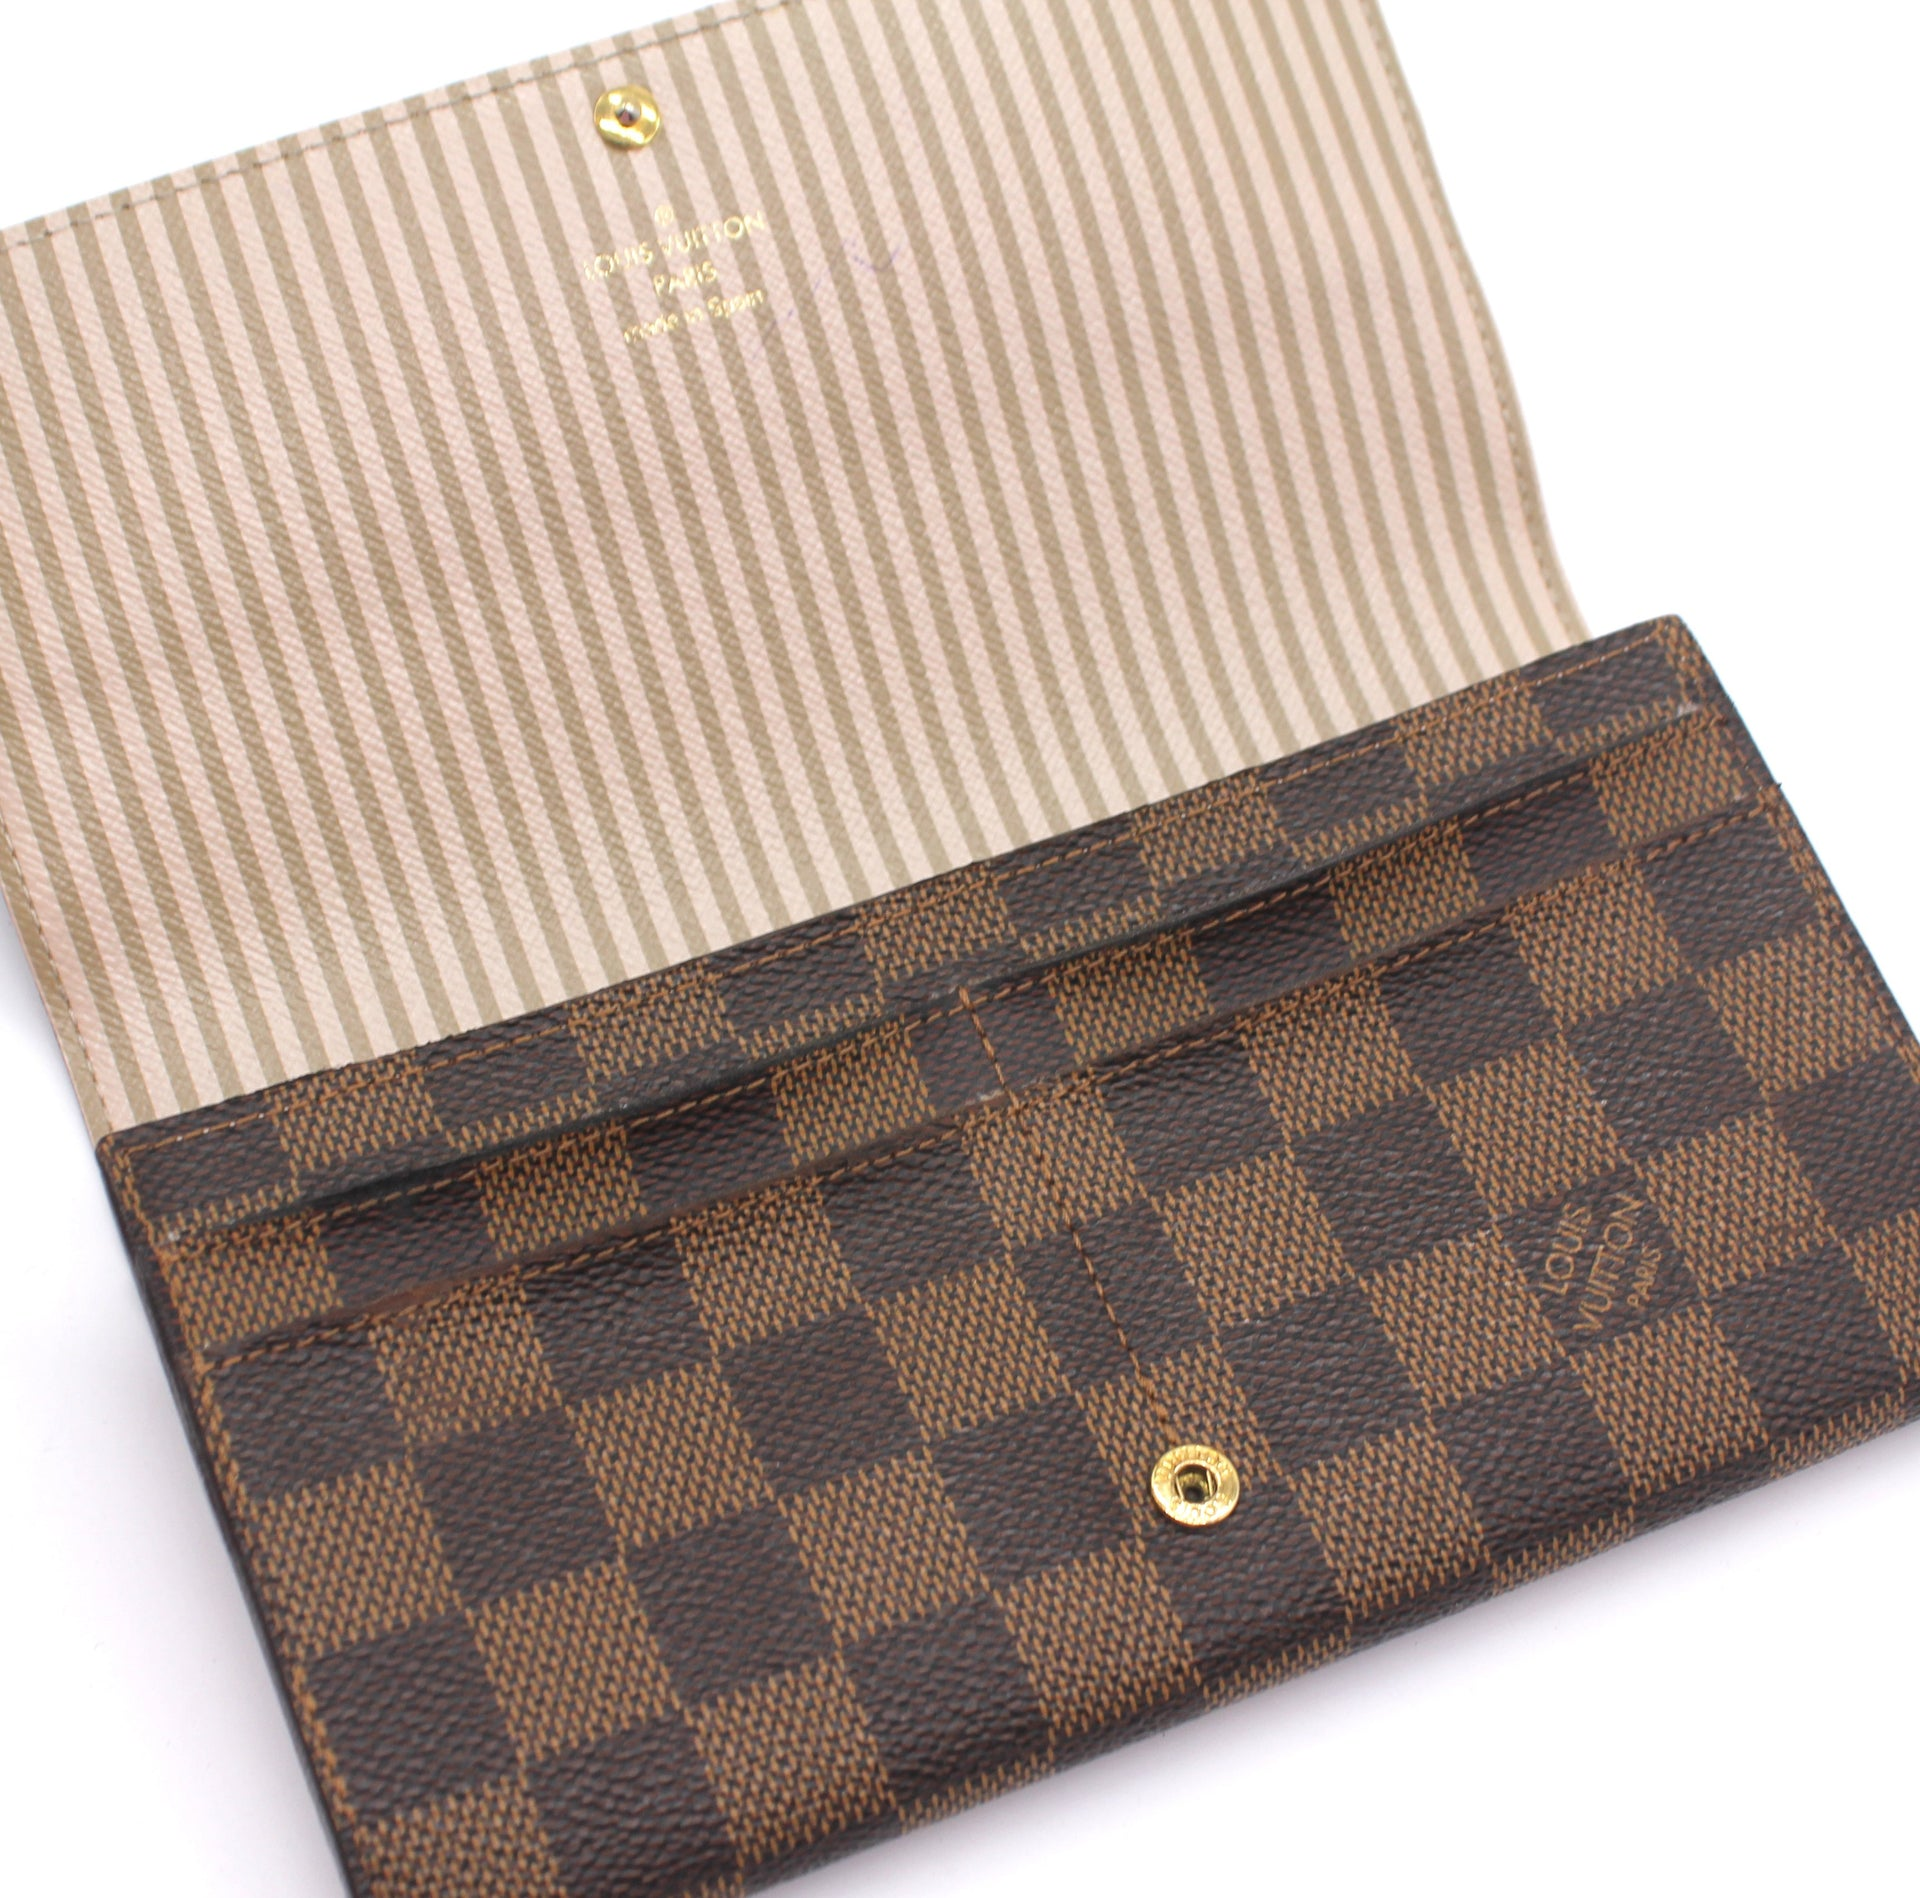 Louis Vuitton Damier Ebene Trunks and Locks Sarah Wallet